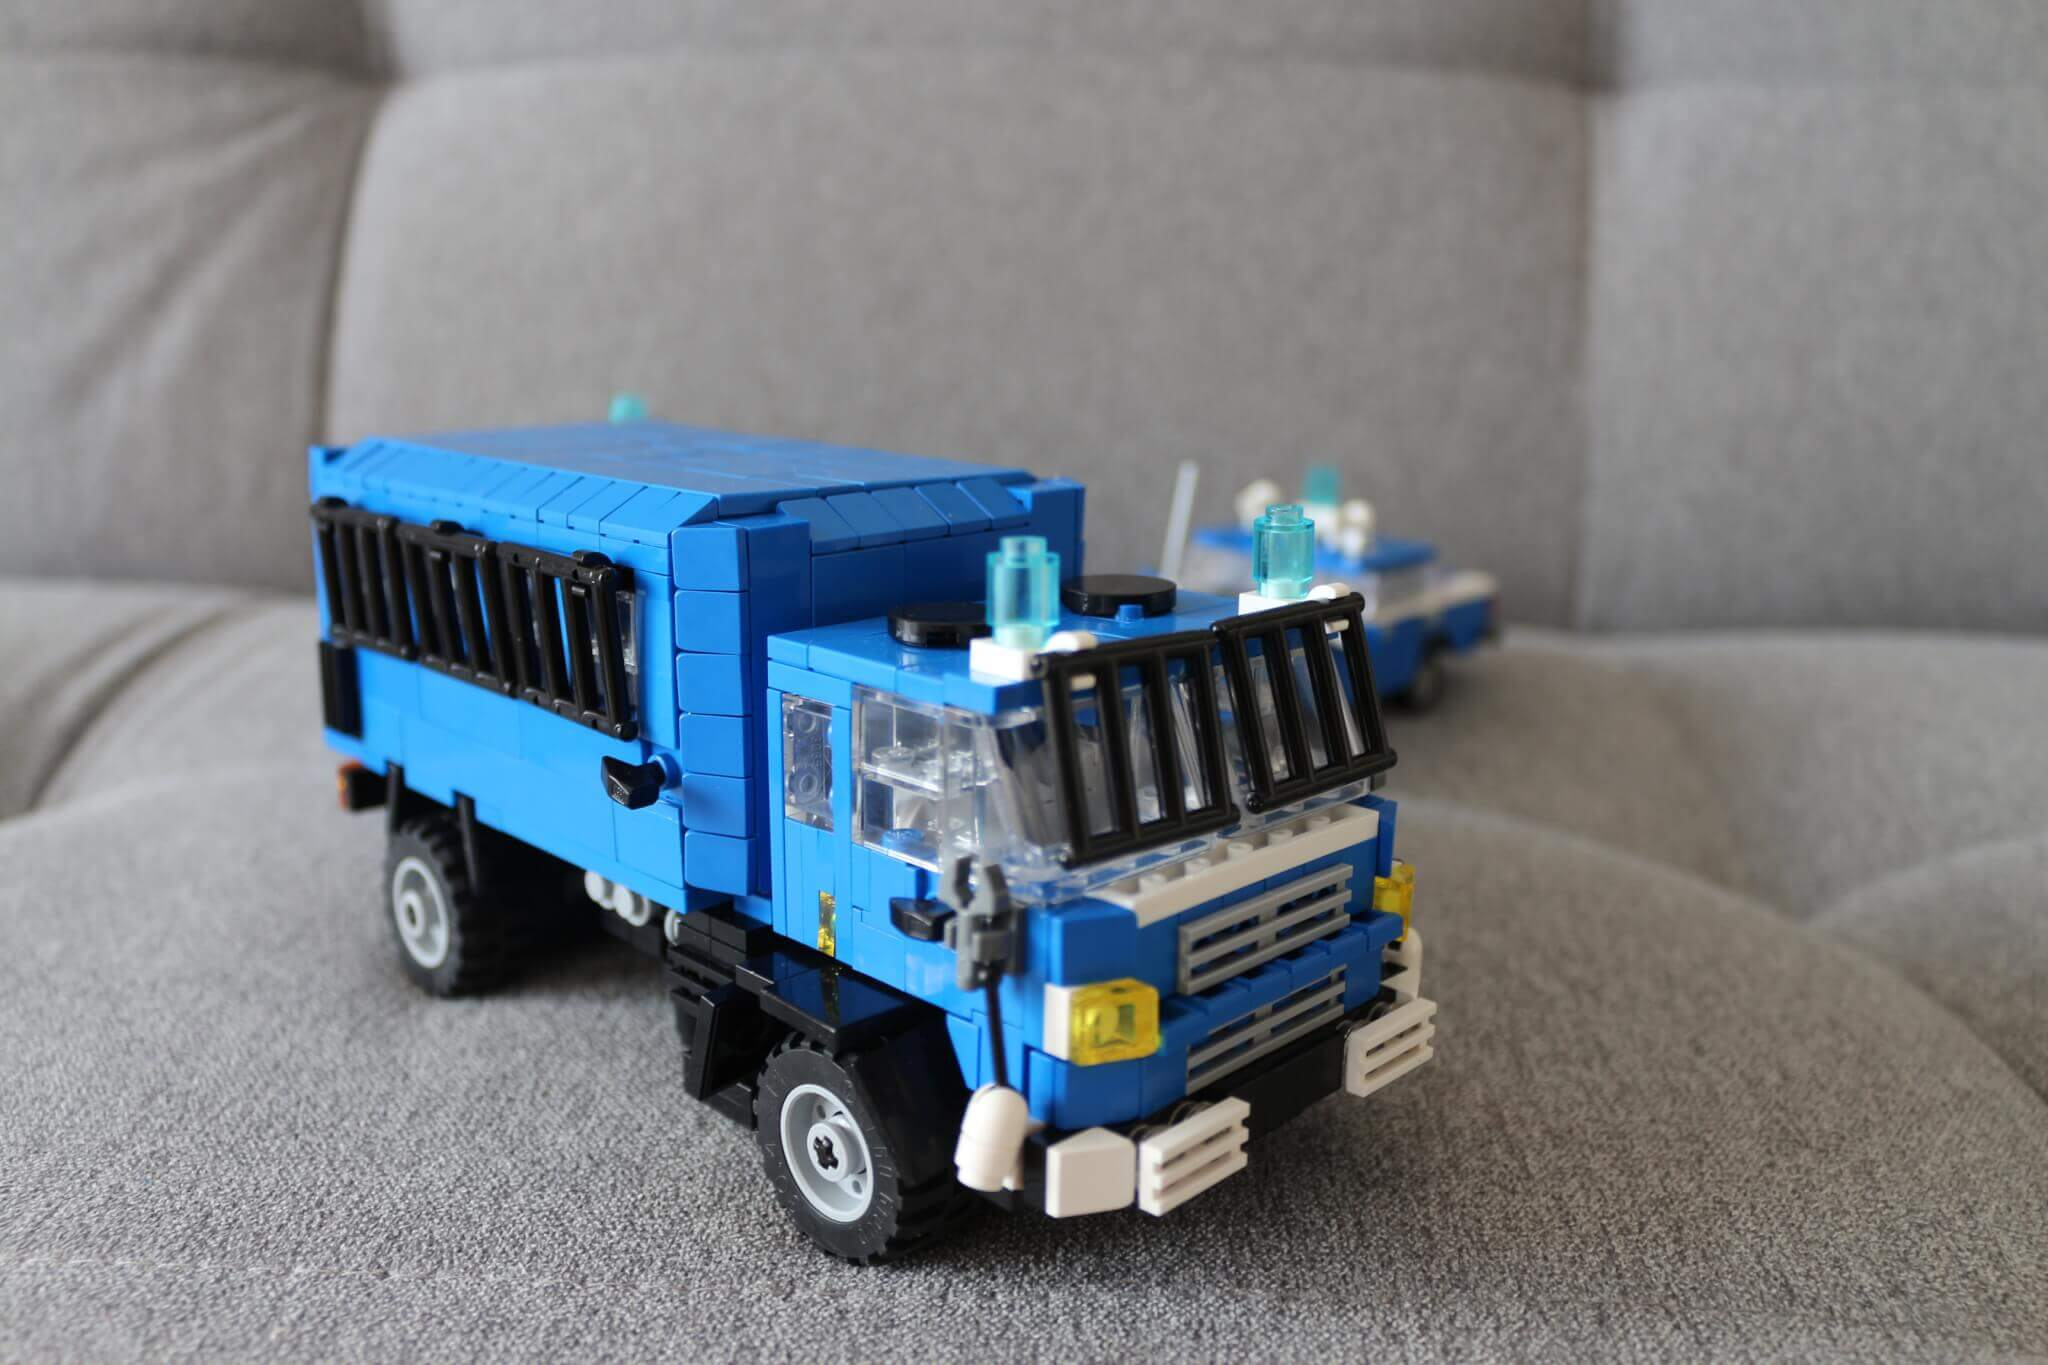 LEGO car models, Police (Militia) when Solidarnosc fight with Communism